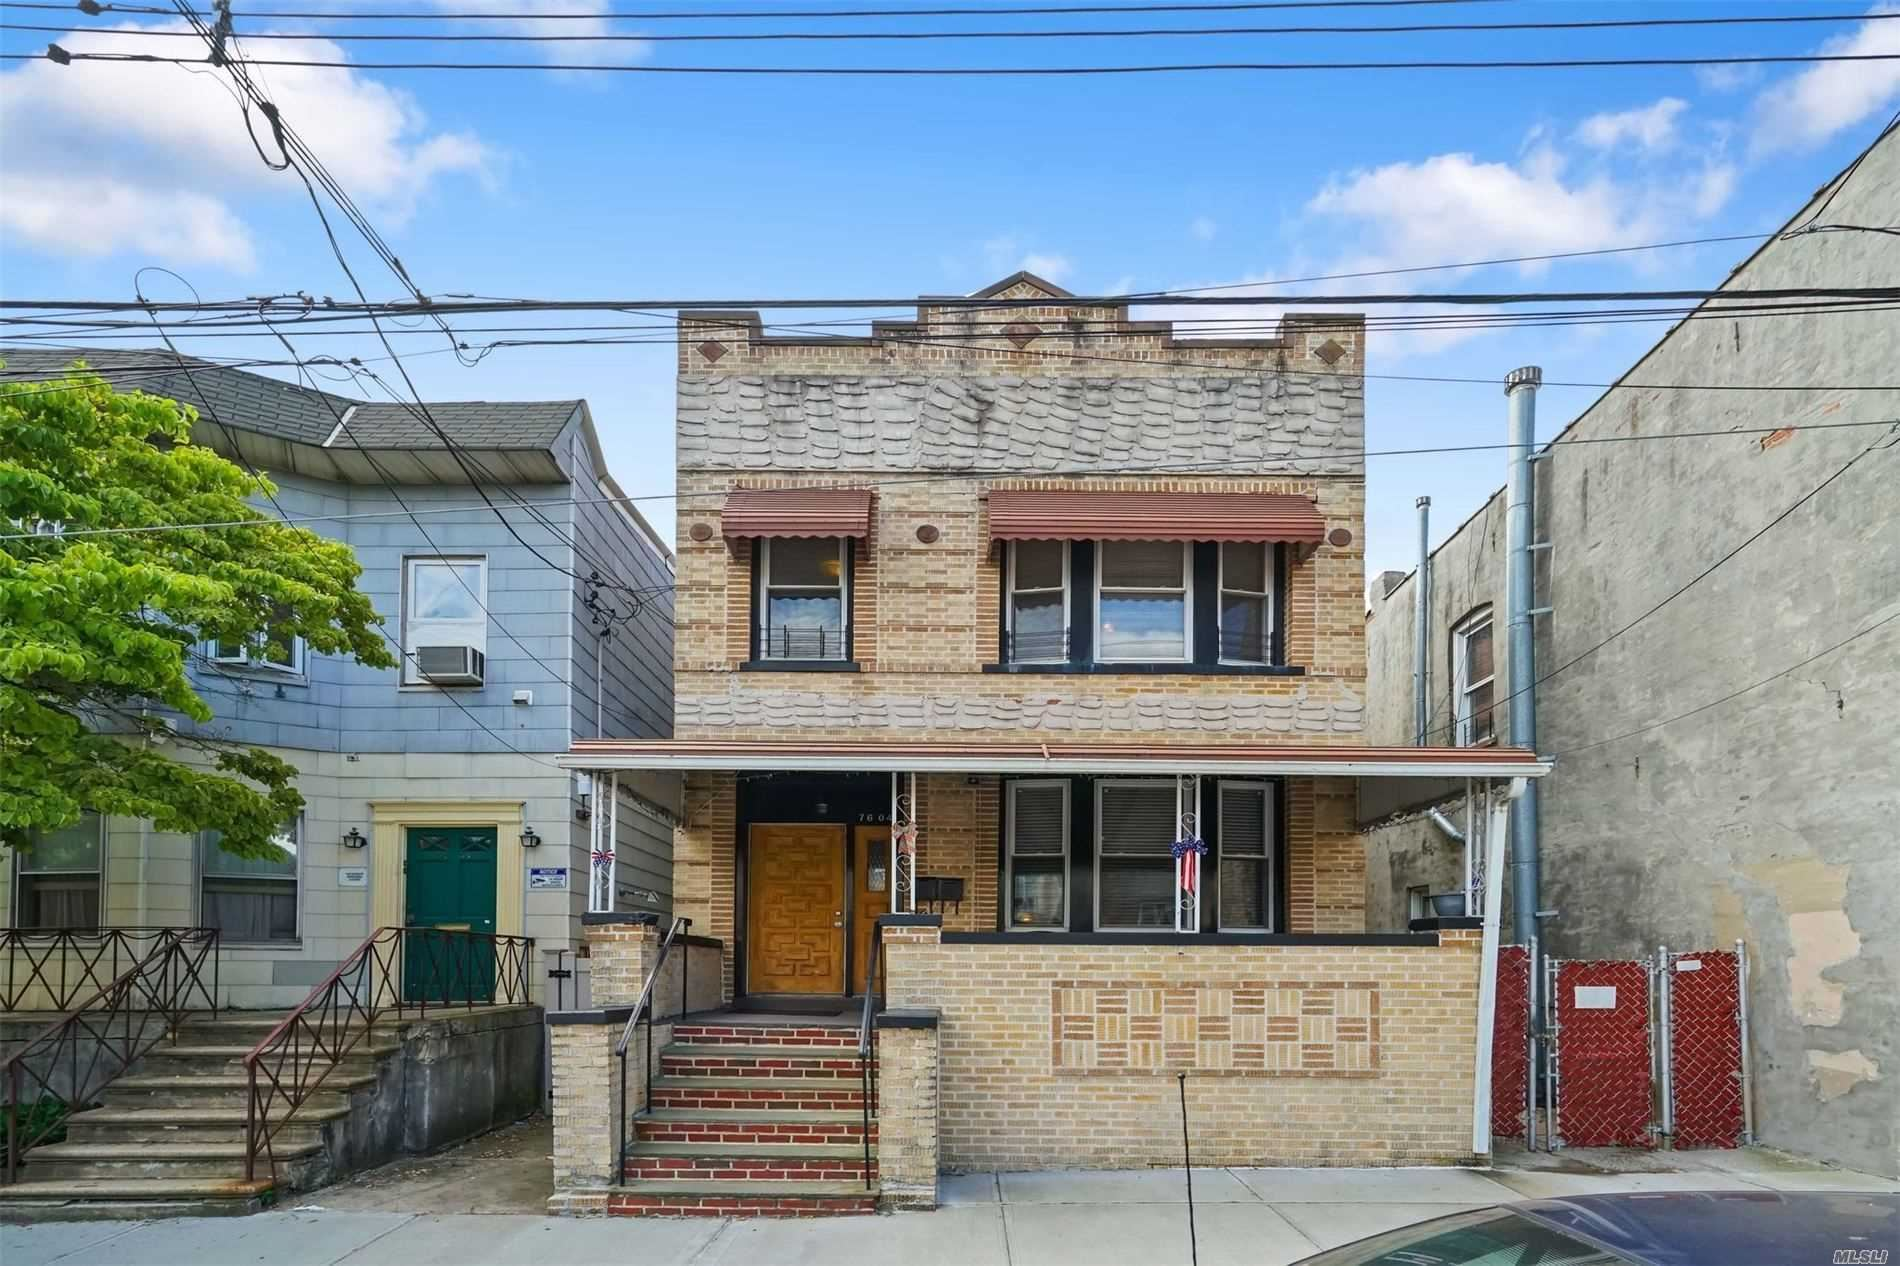 76-04 68th Avenue, Middle Village, NY 11379 - MLS#: 3226588